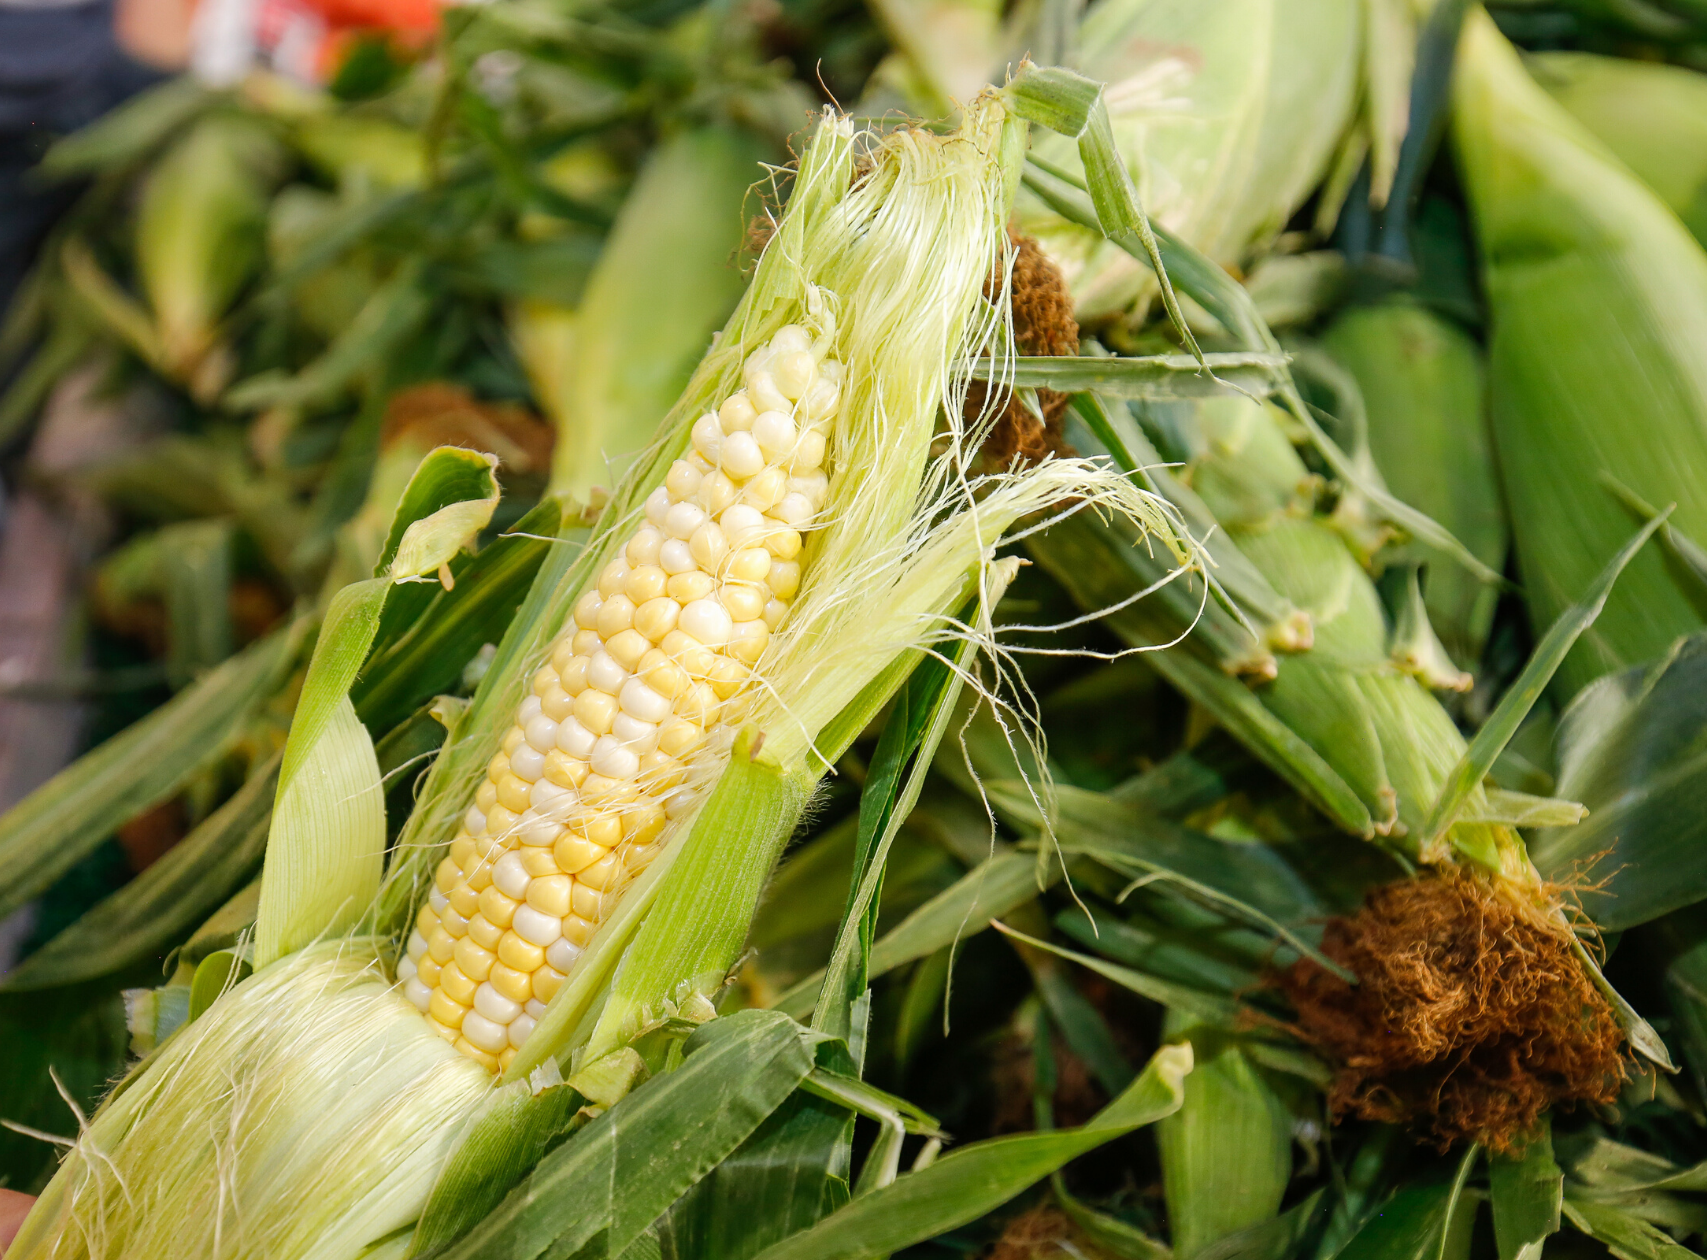 Colorado sweet corn